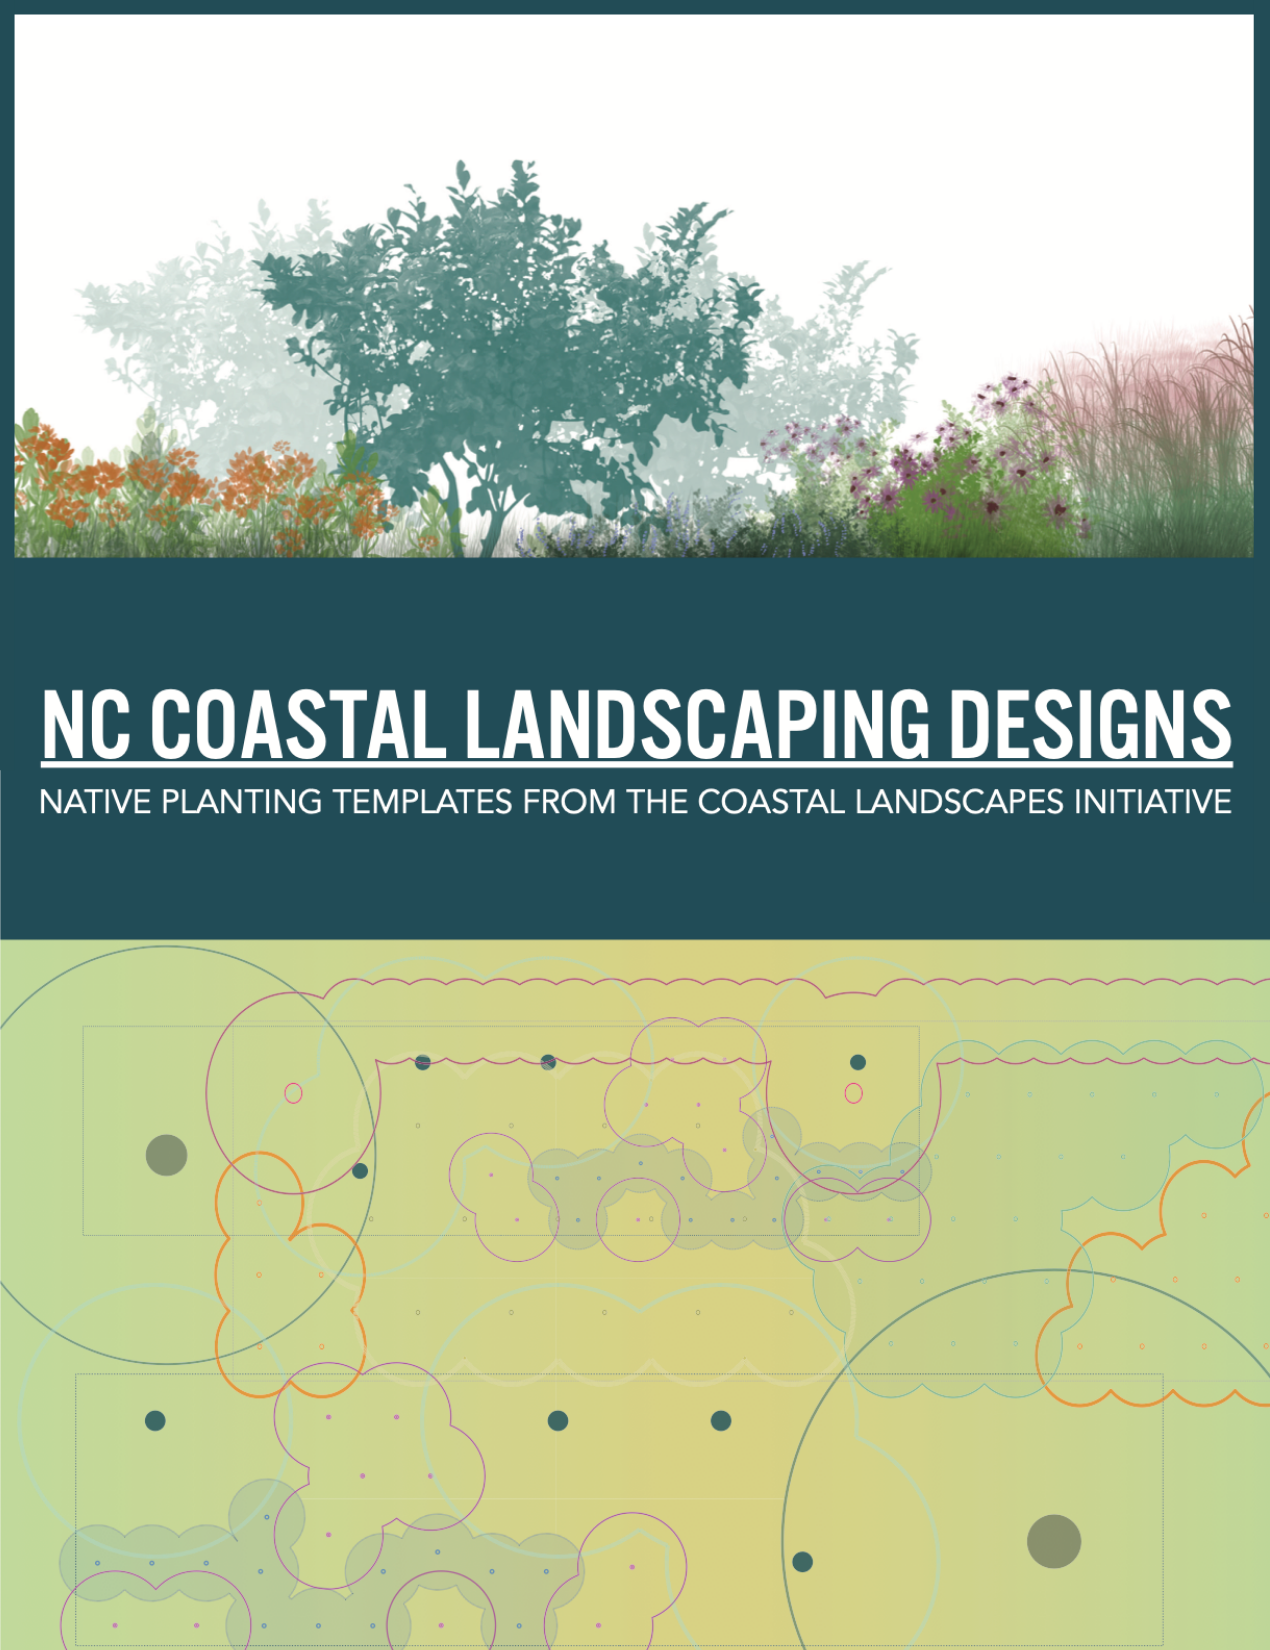 An image of the front cover of the NC Coastal Landscaping Design series